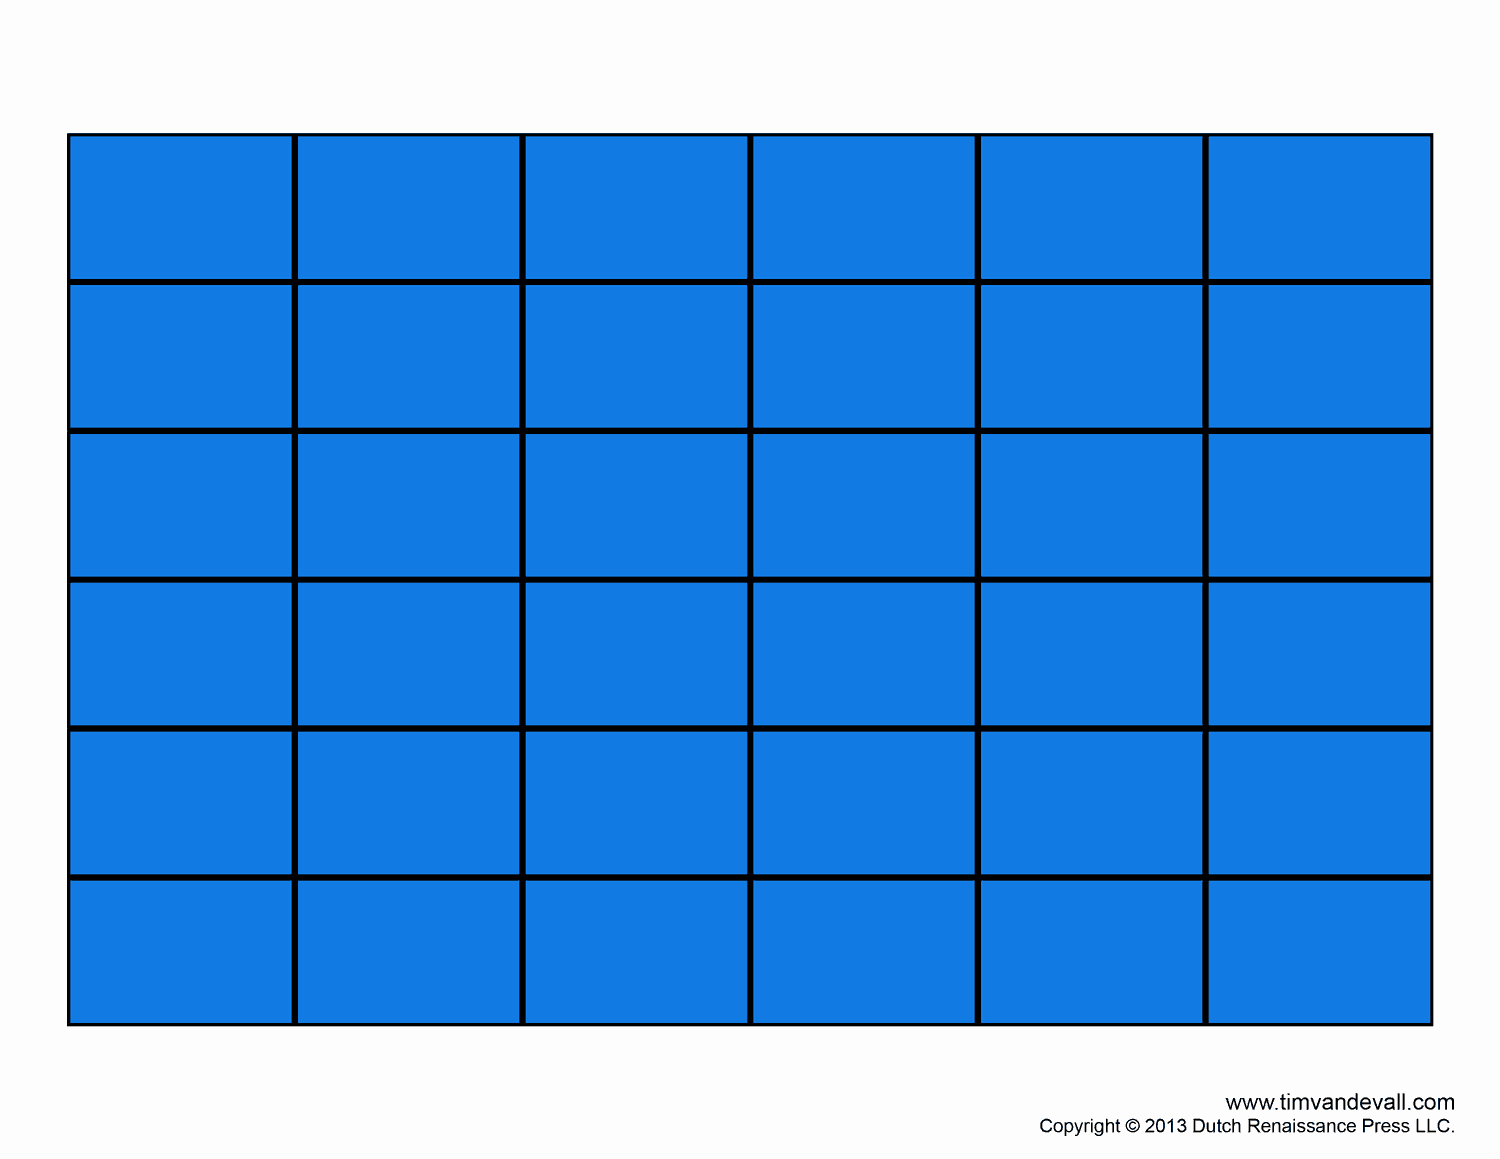 Blank Board Game Template Awesome Free Jeopardy Template Make Your Own Jeopardy Game